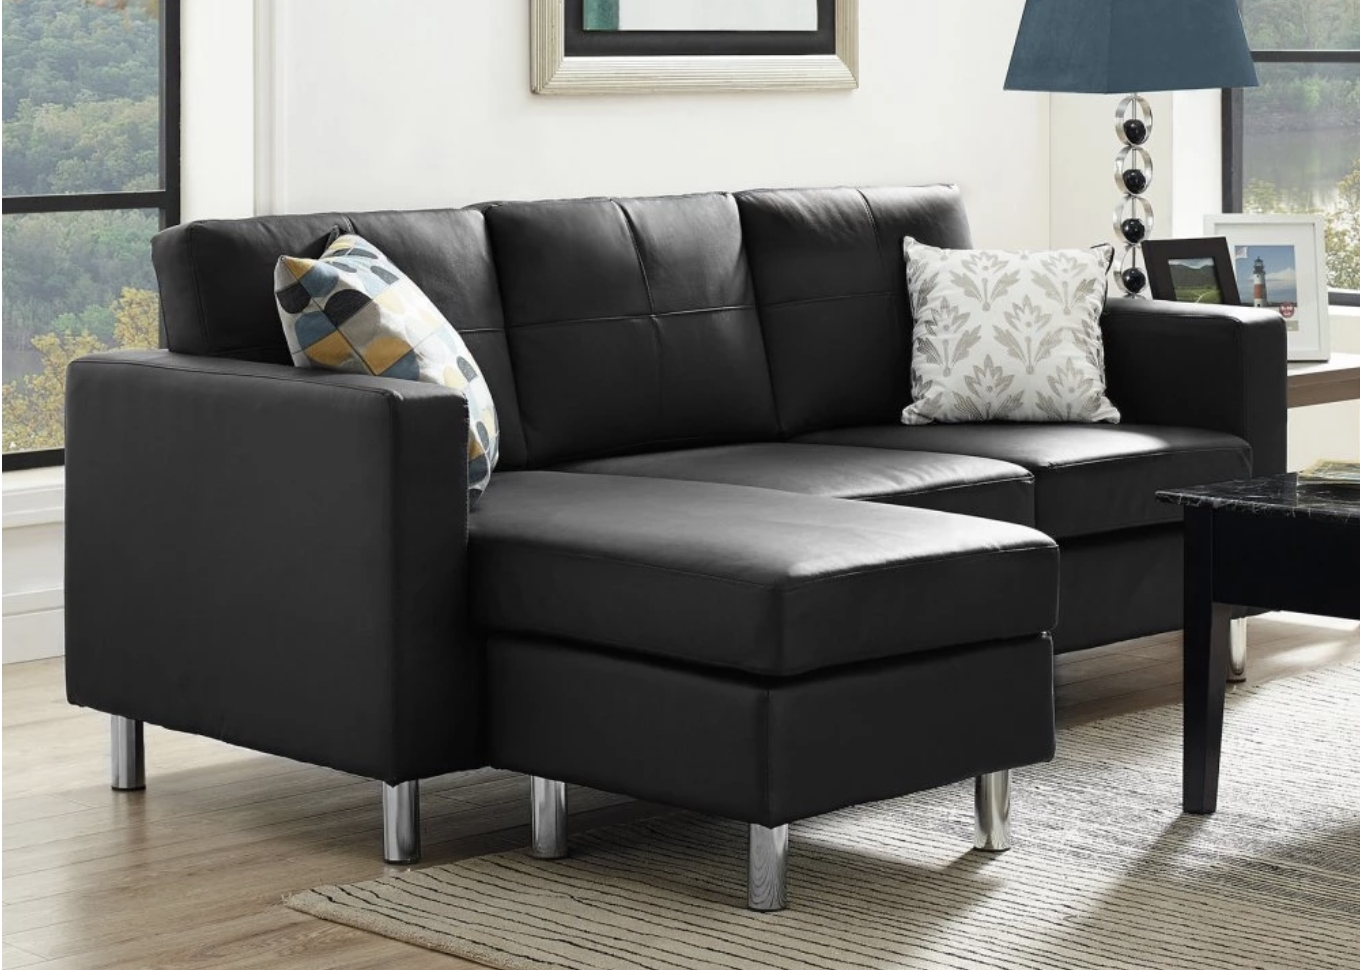 75 Modern Sectional Sofas For Small Spaces (2018) Regarding Sectional Sofas For Small Areas (View 4 of 10)